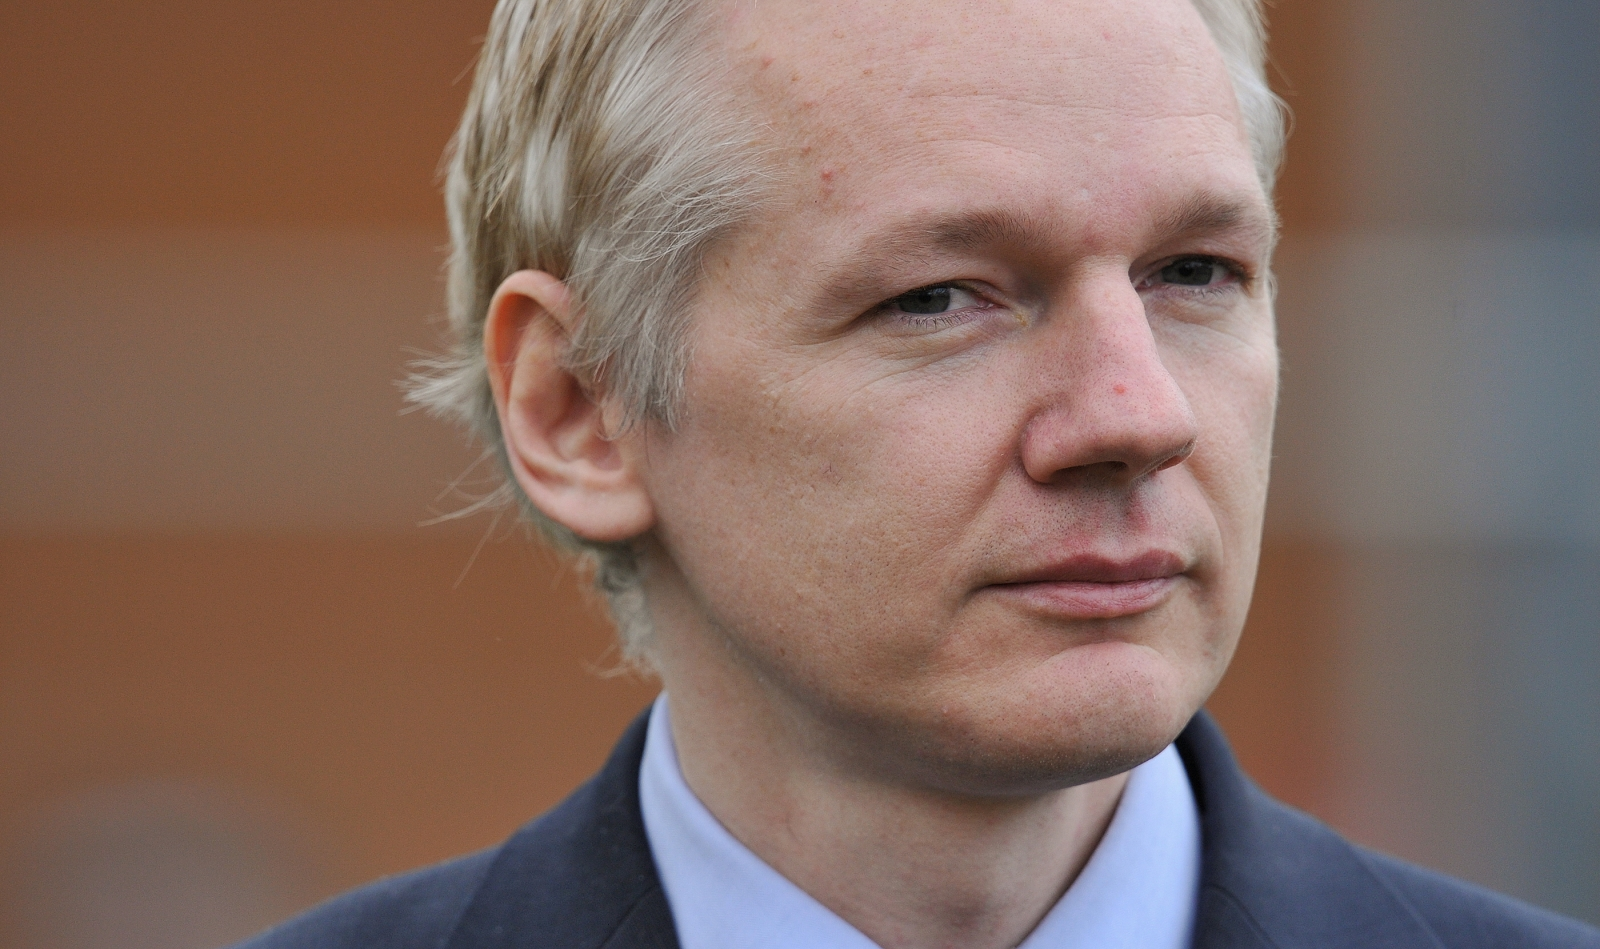 Assange - Obama administration attempting to 'delegitimize' Trump